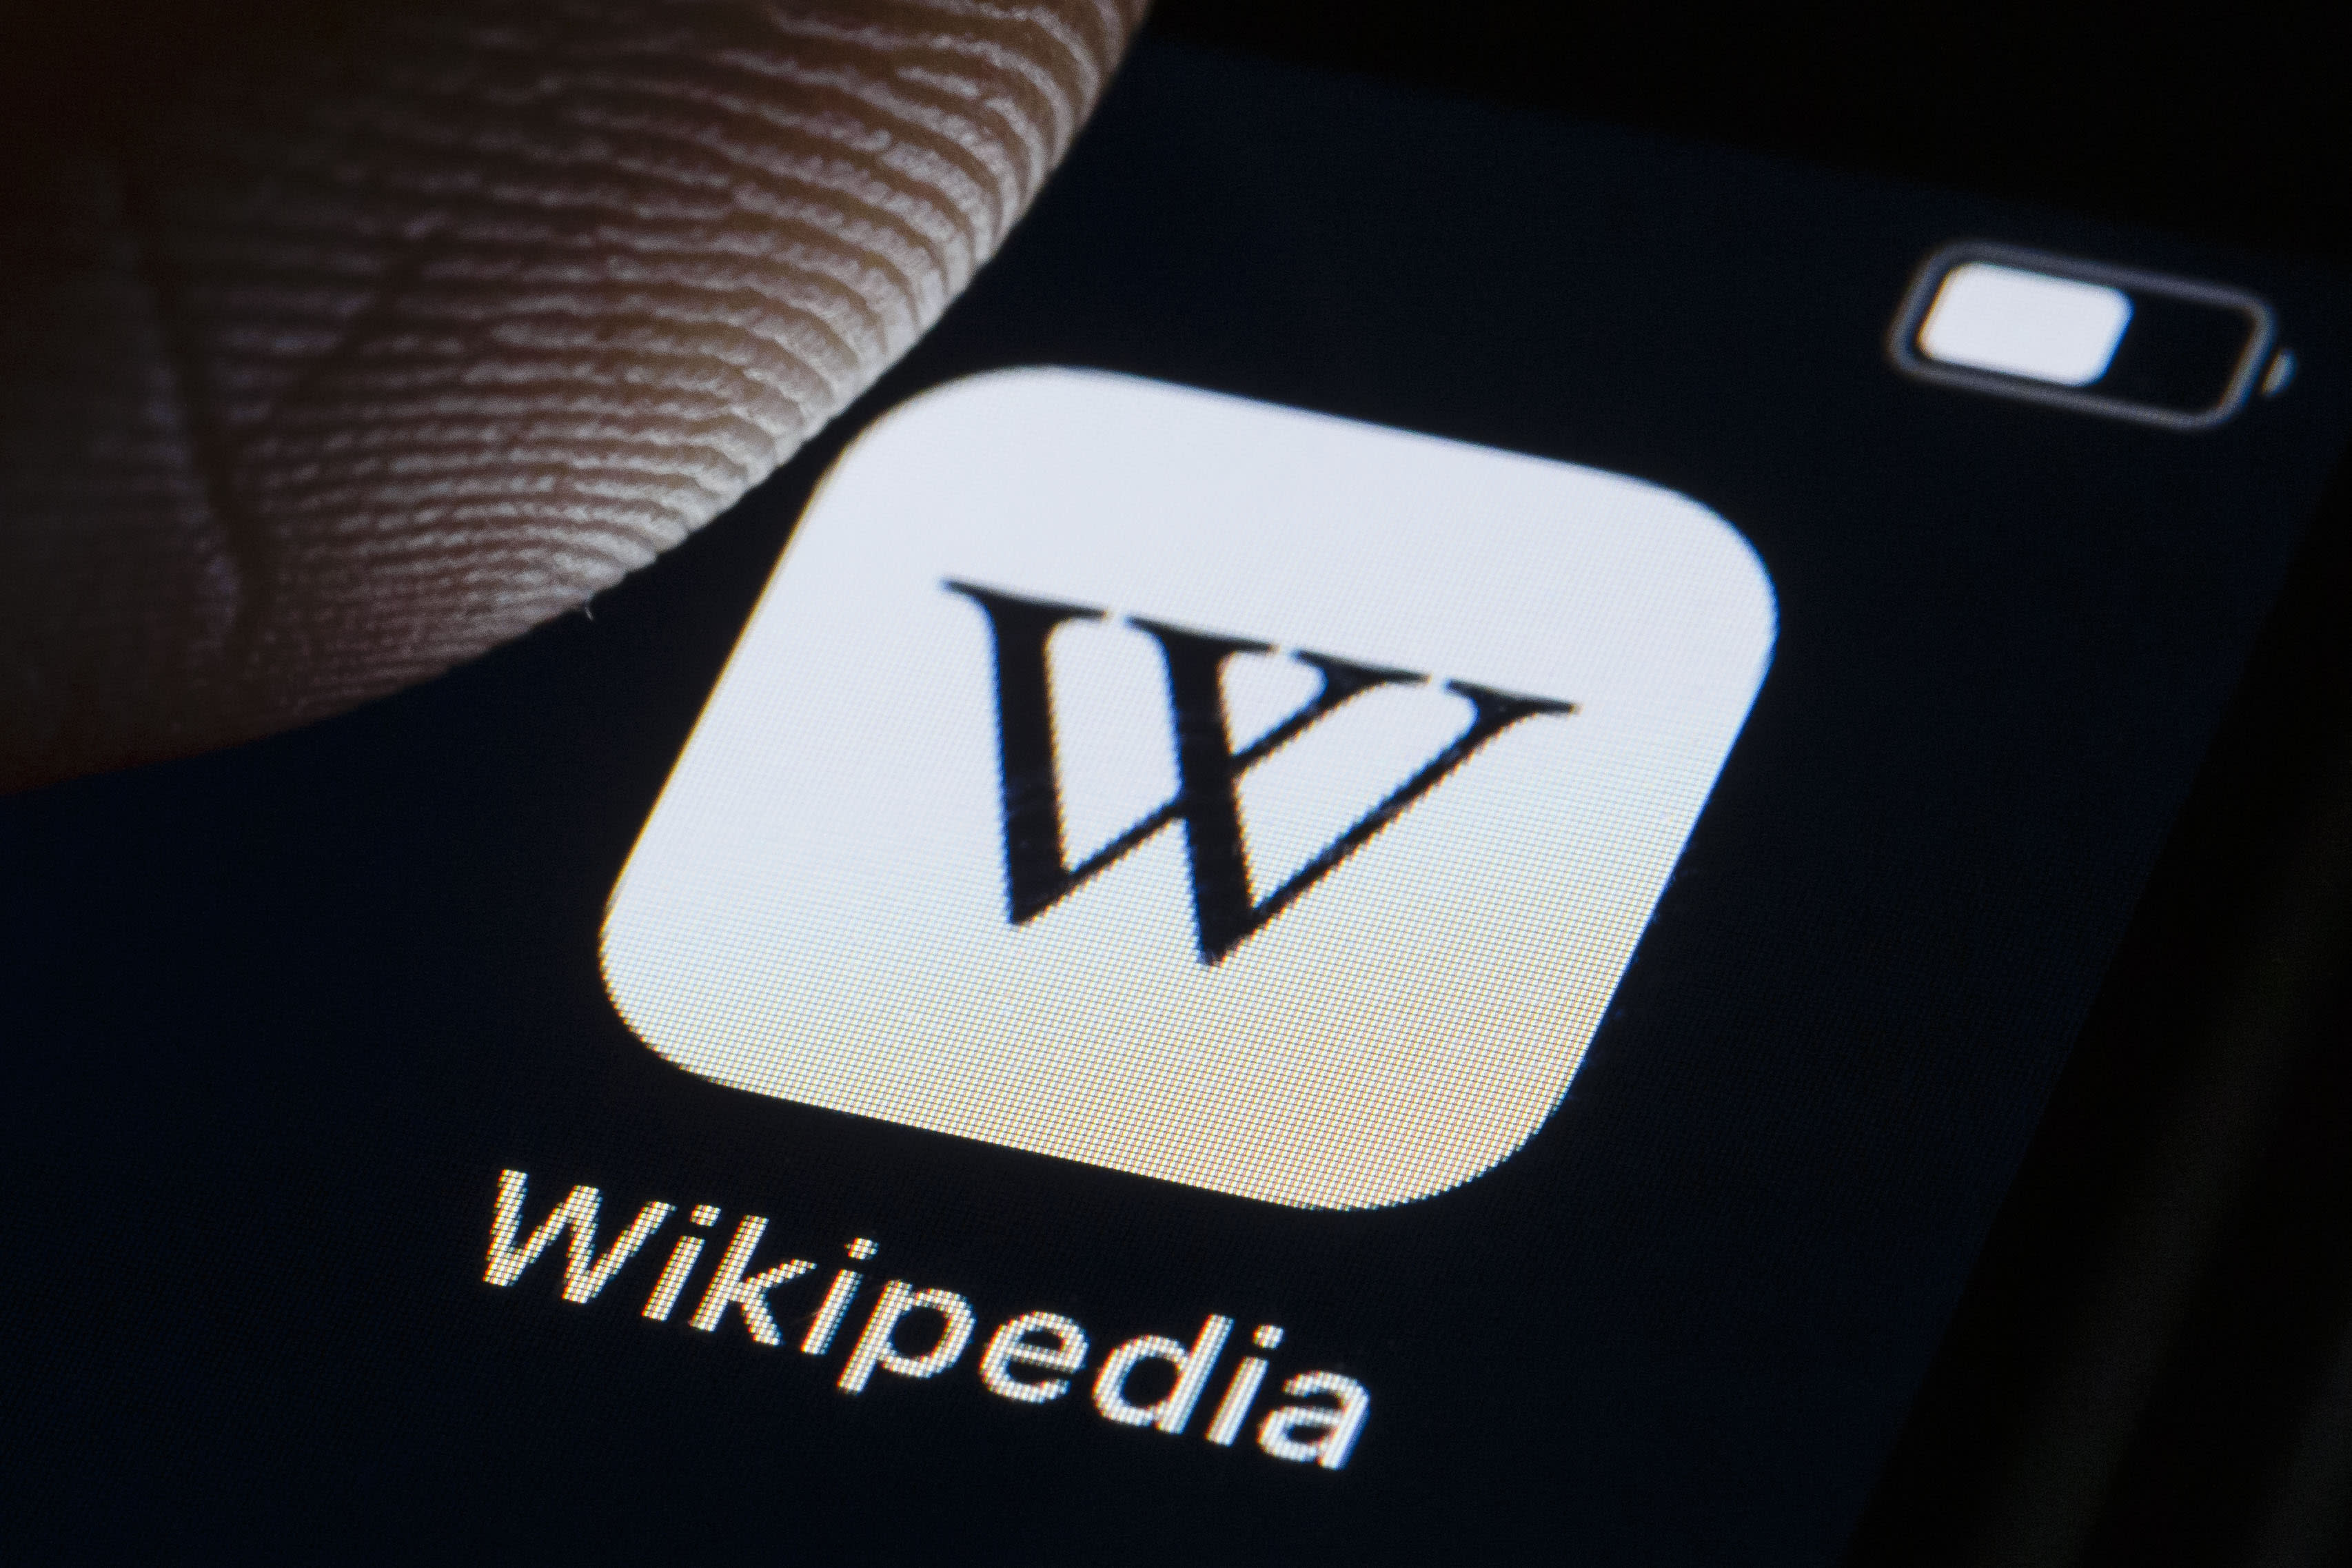 Here's what dominated Wikipedia's most-read articles last year